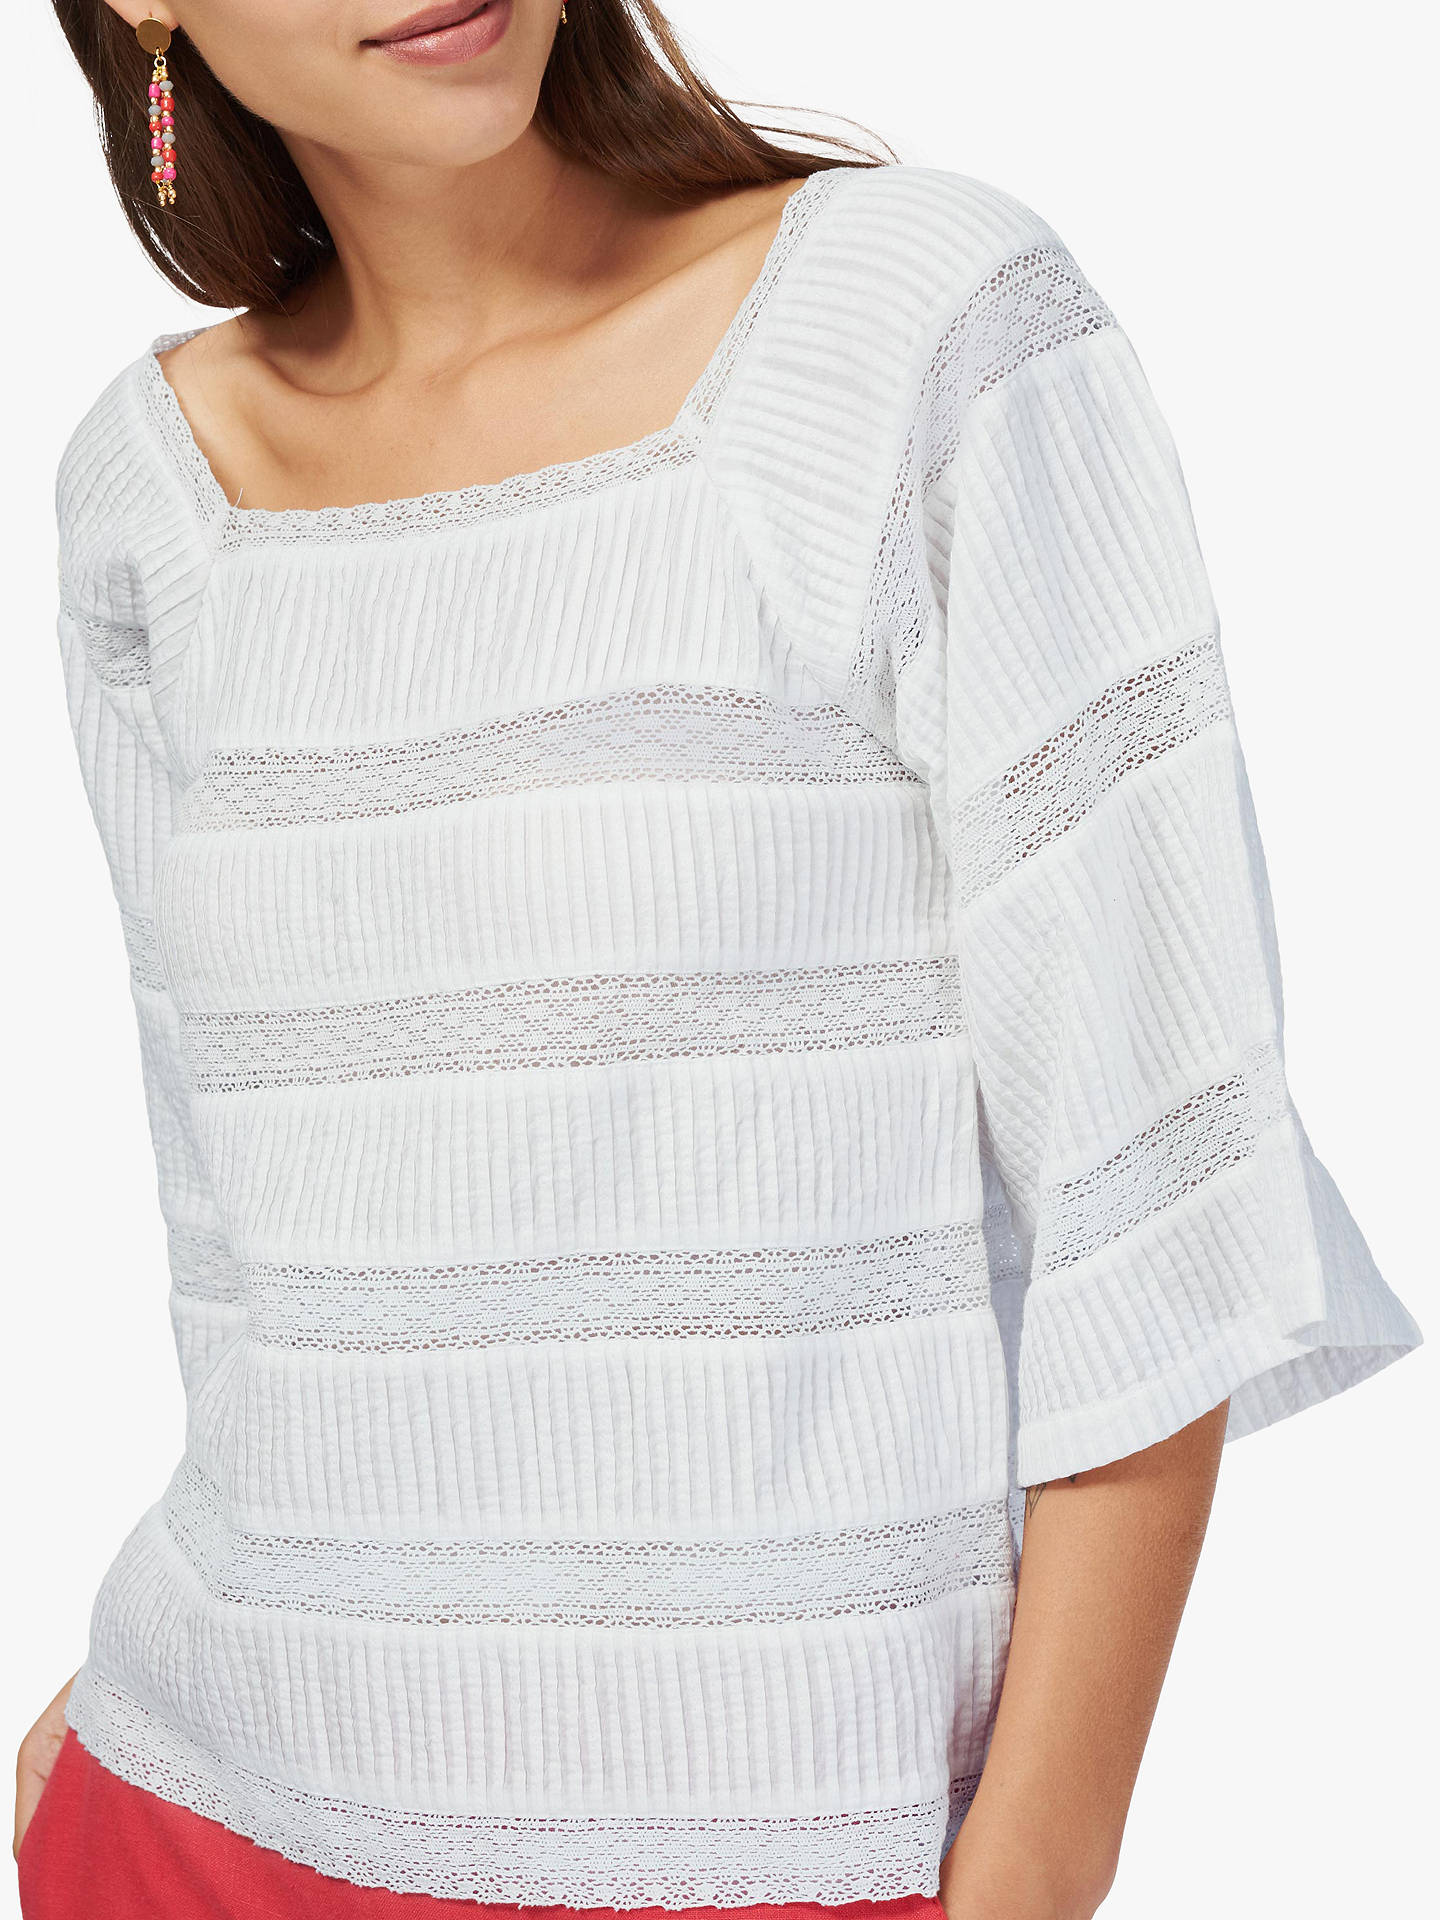 ce854e56c0e82 Buy Brora Pintuck And Lace Cotton Top, White, 8 Online at johnlewis.com ...